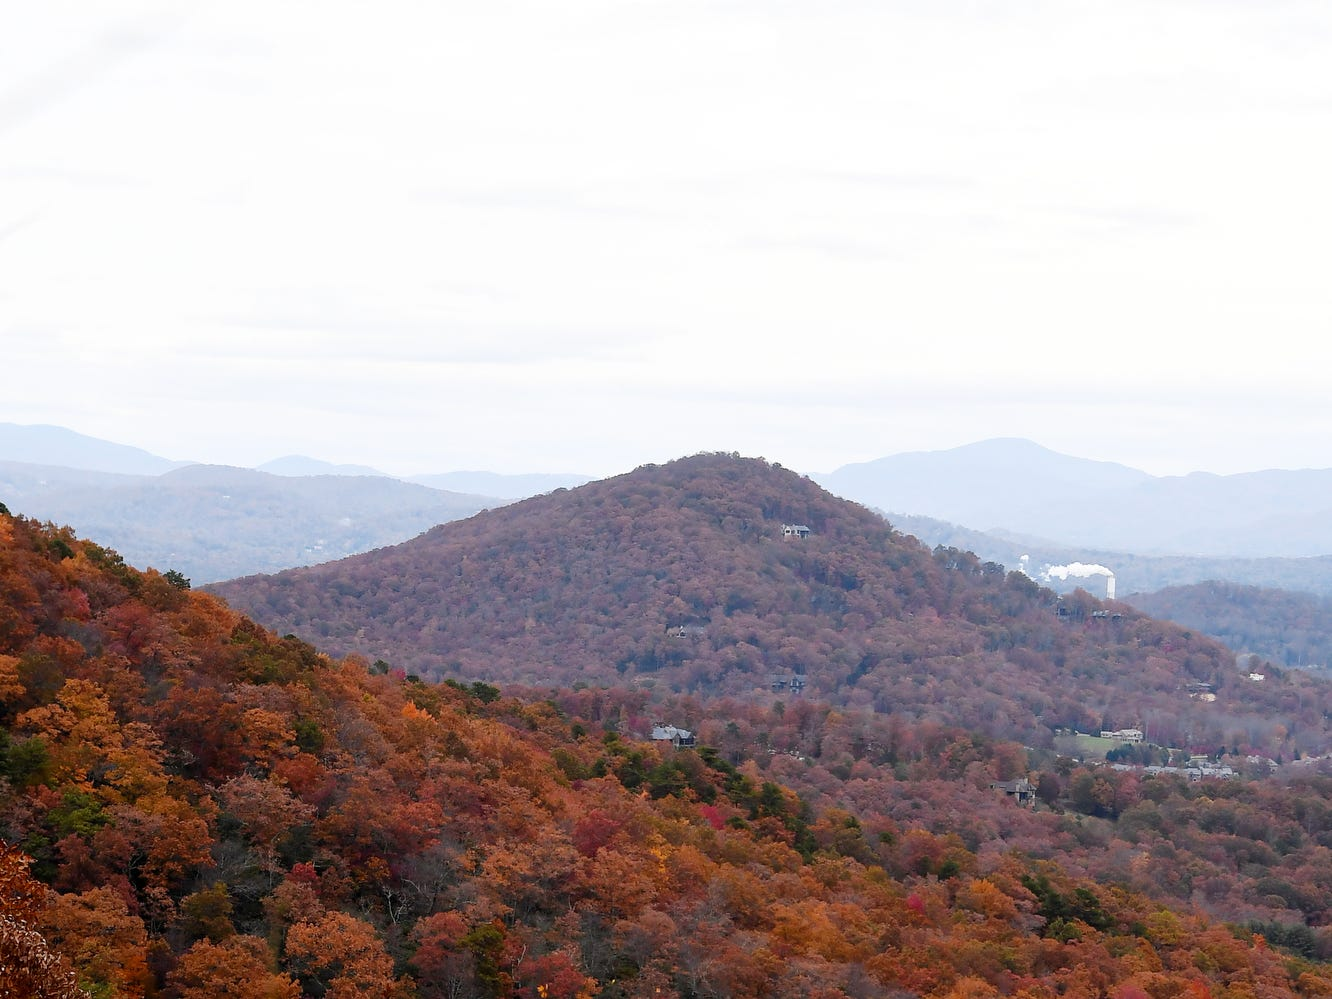 Autumn views from the Blue Ridge Parkway November 4, 2018.